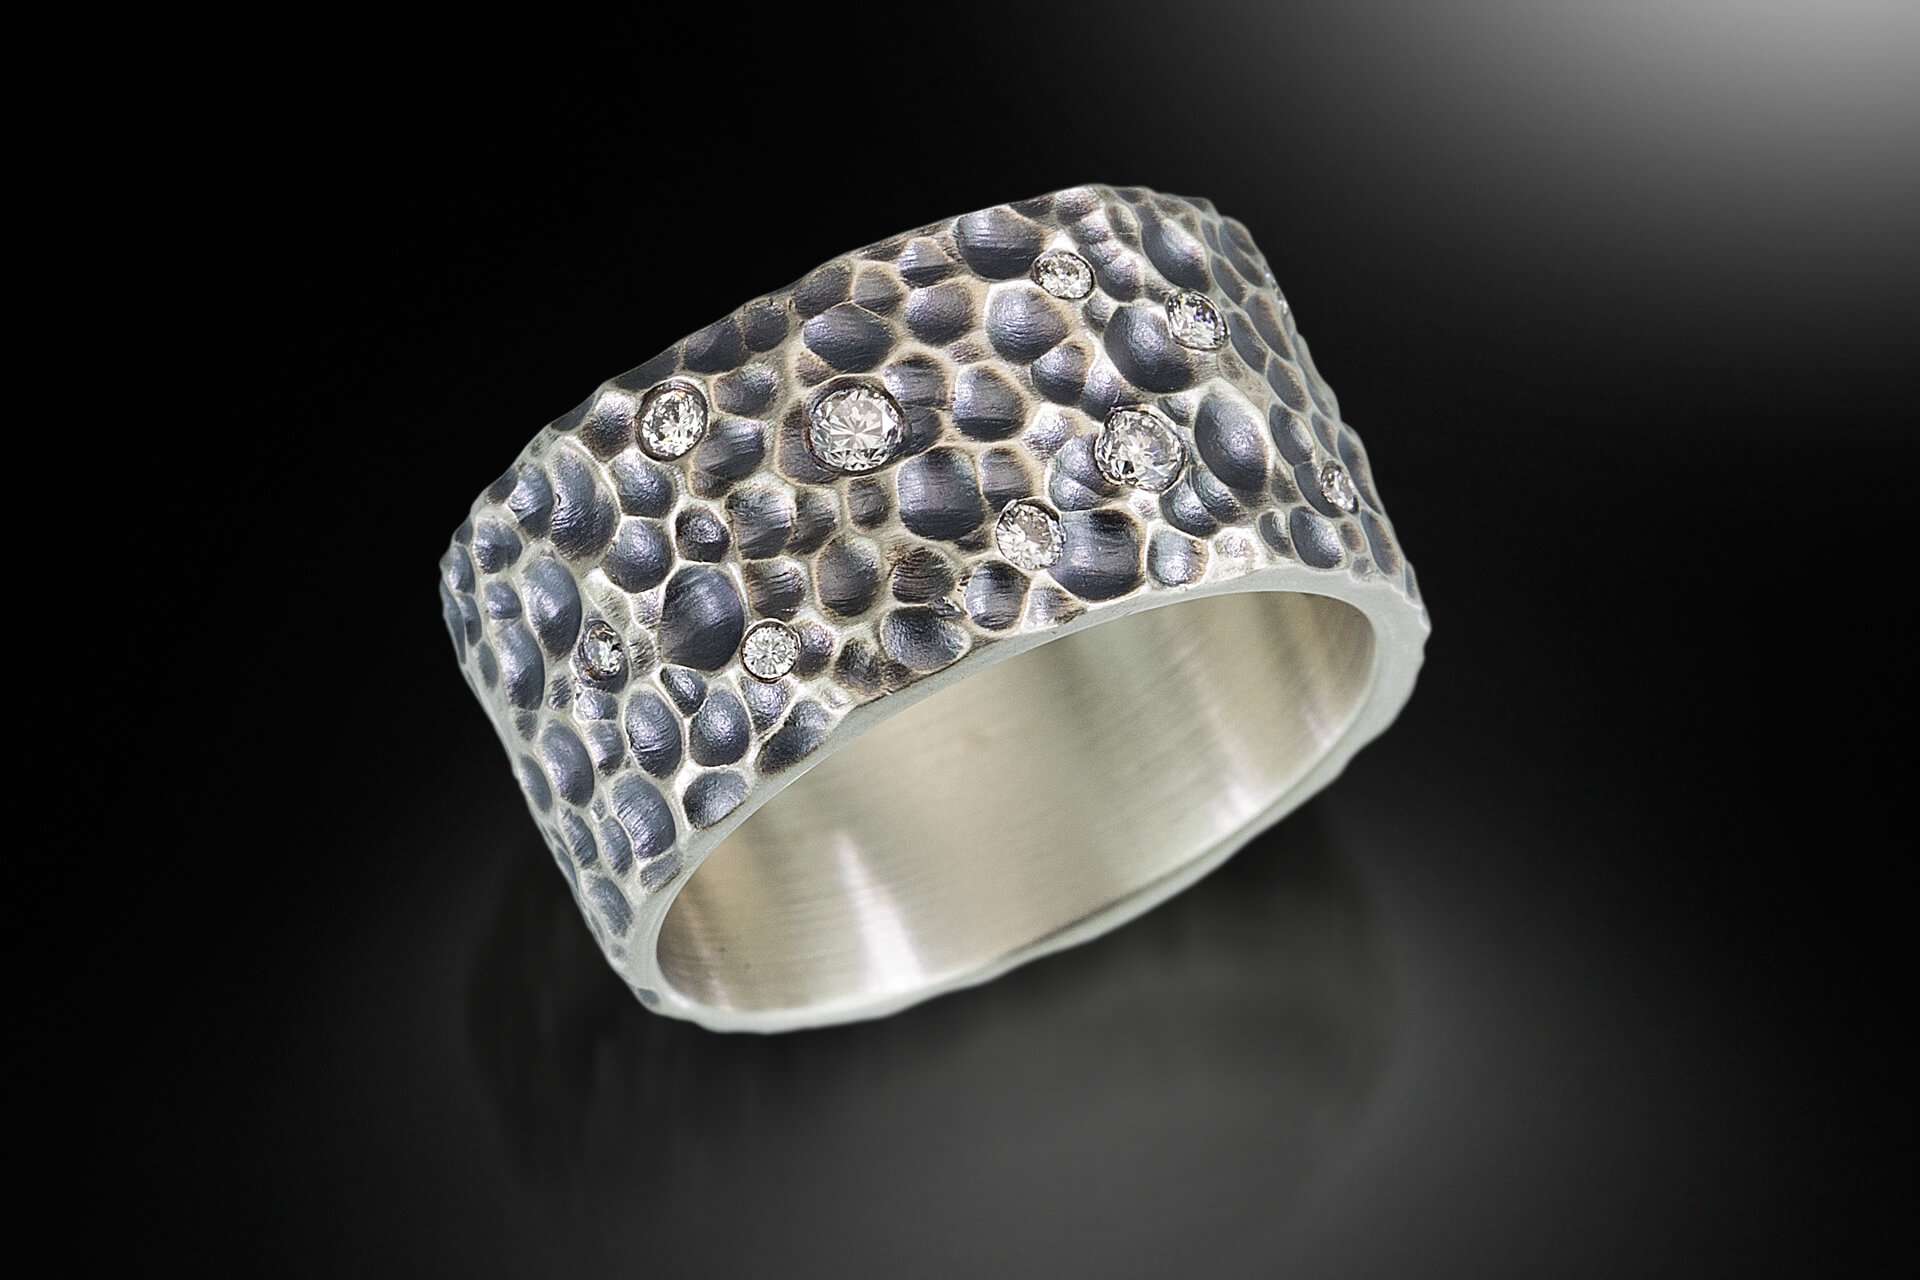 Isabelle Ecker Jewelry: Crater, handcrafted jewelry, wedding jewelry, wedding band, engagement, handcrafted, diamonds